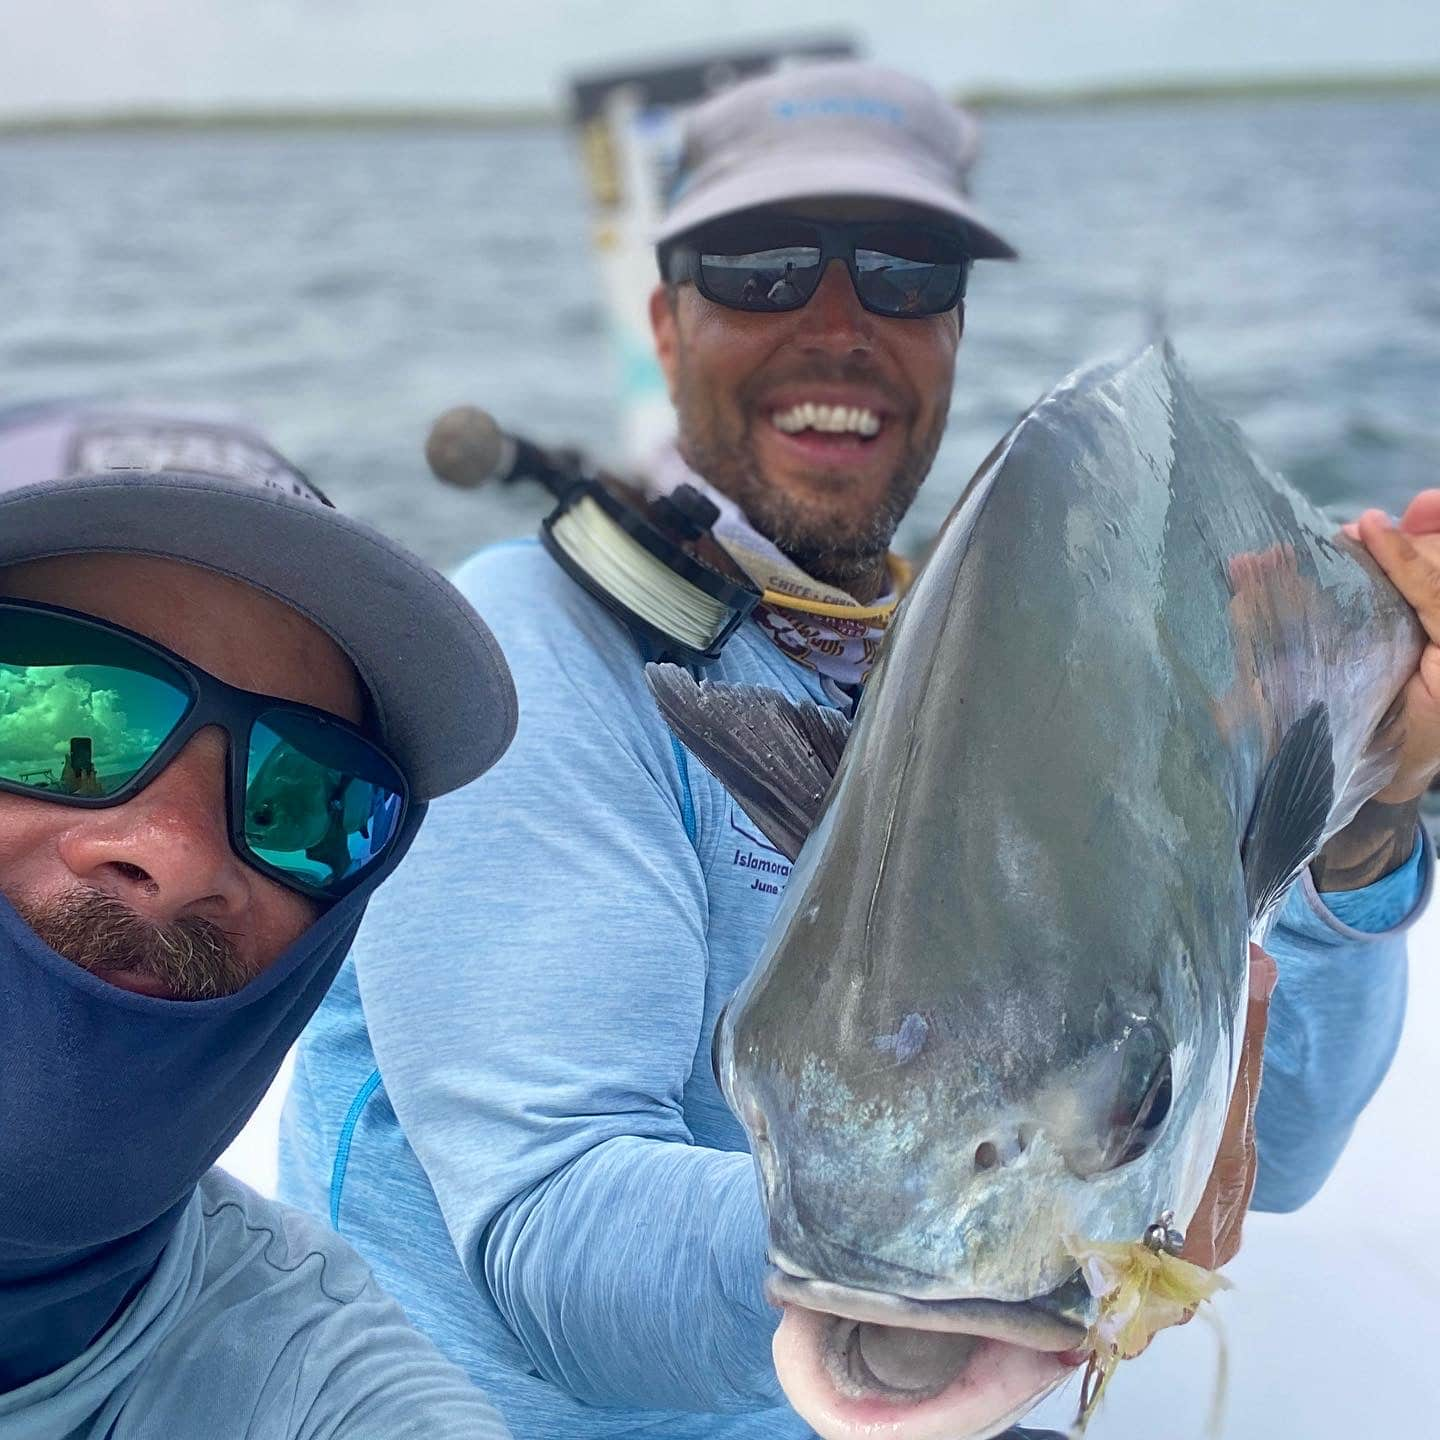 Miami fishing report-late fall early winter